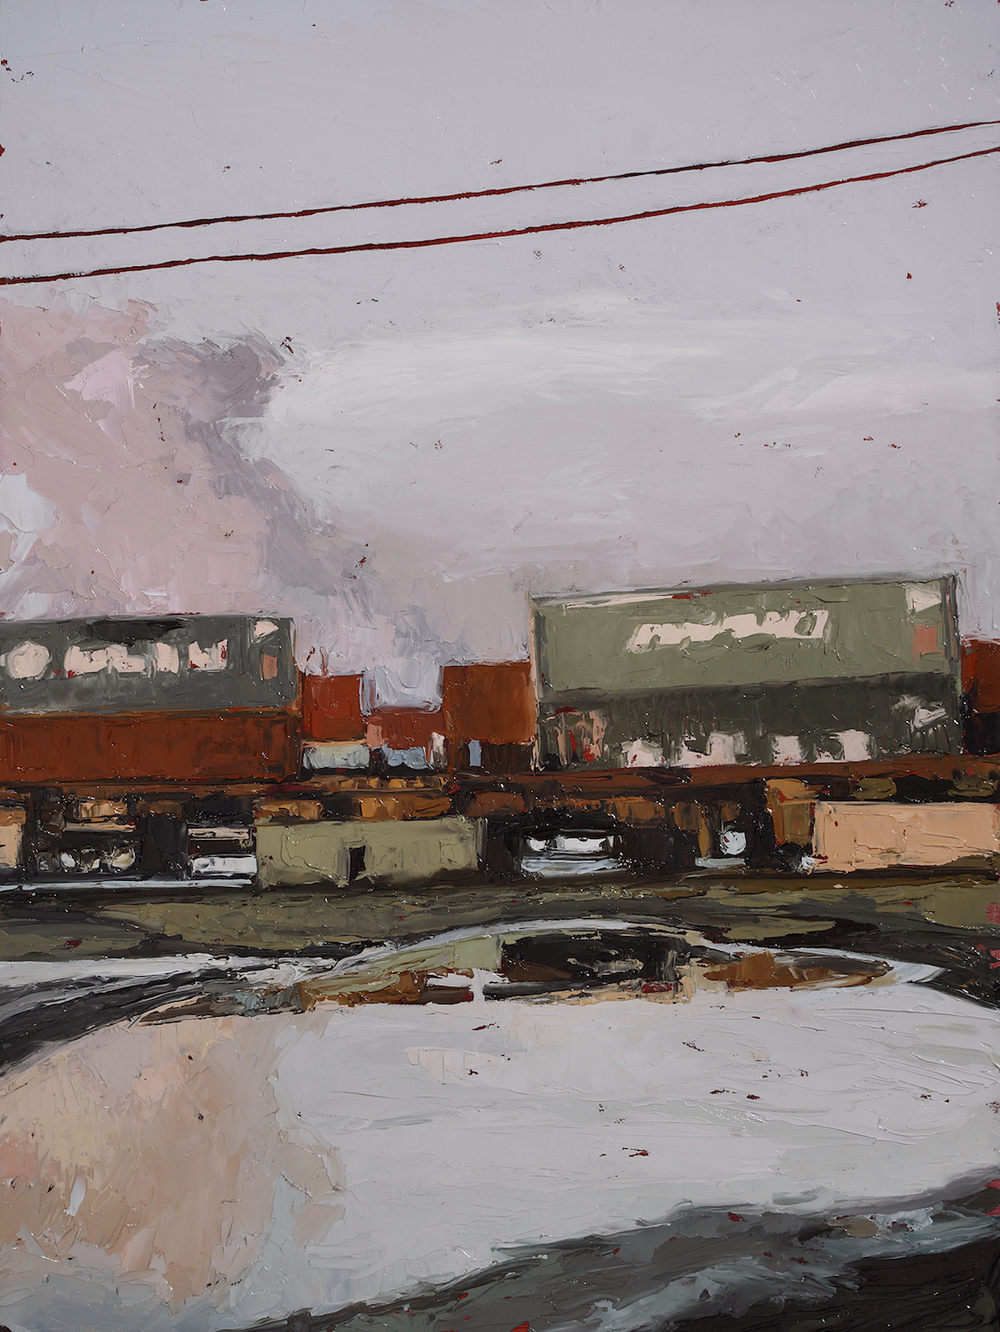 Railyard No. 2